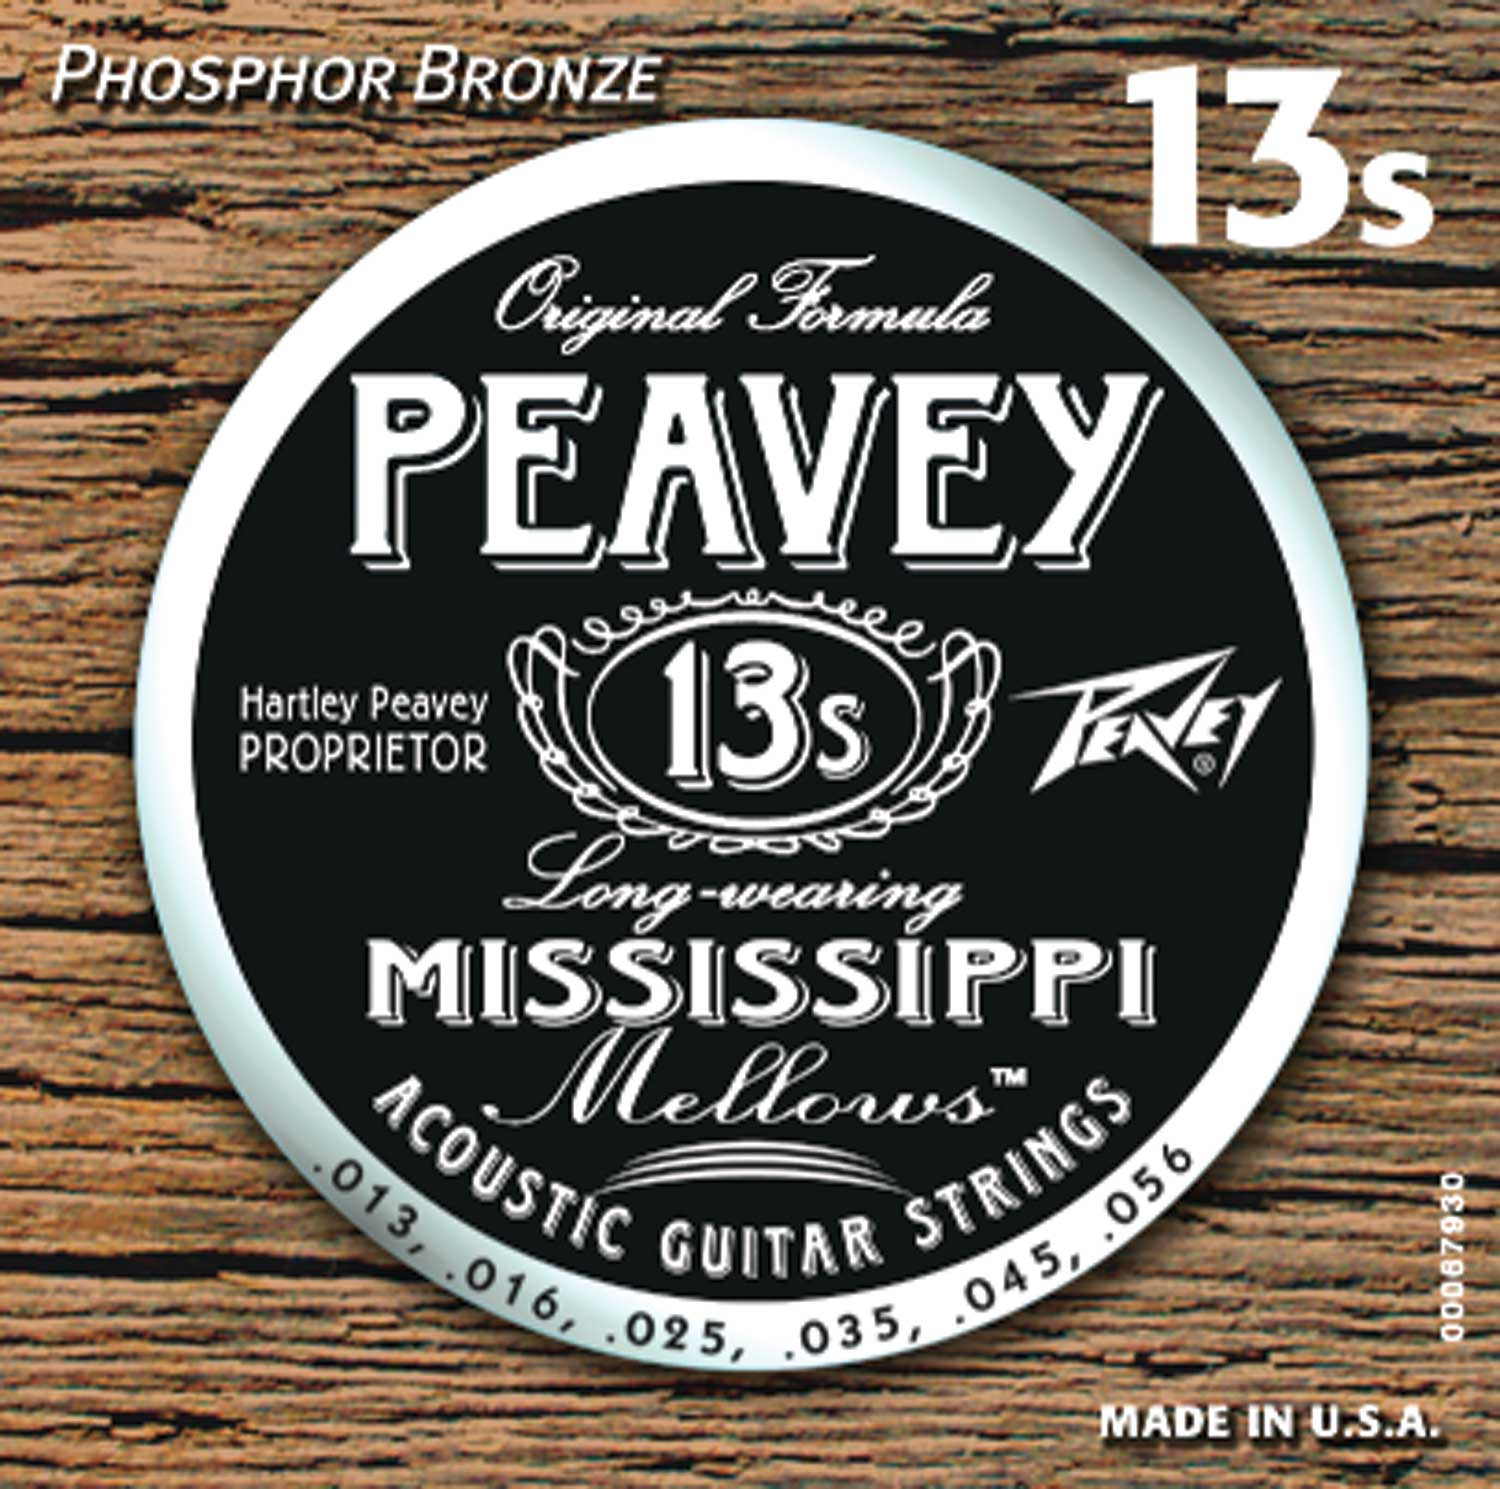 Peavey PH BR WND BAL 13S Set/Package Quality Acoustic Guitar String 578520 New